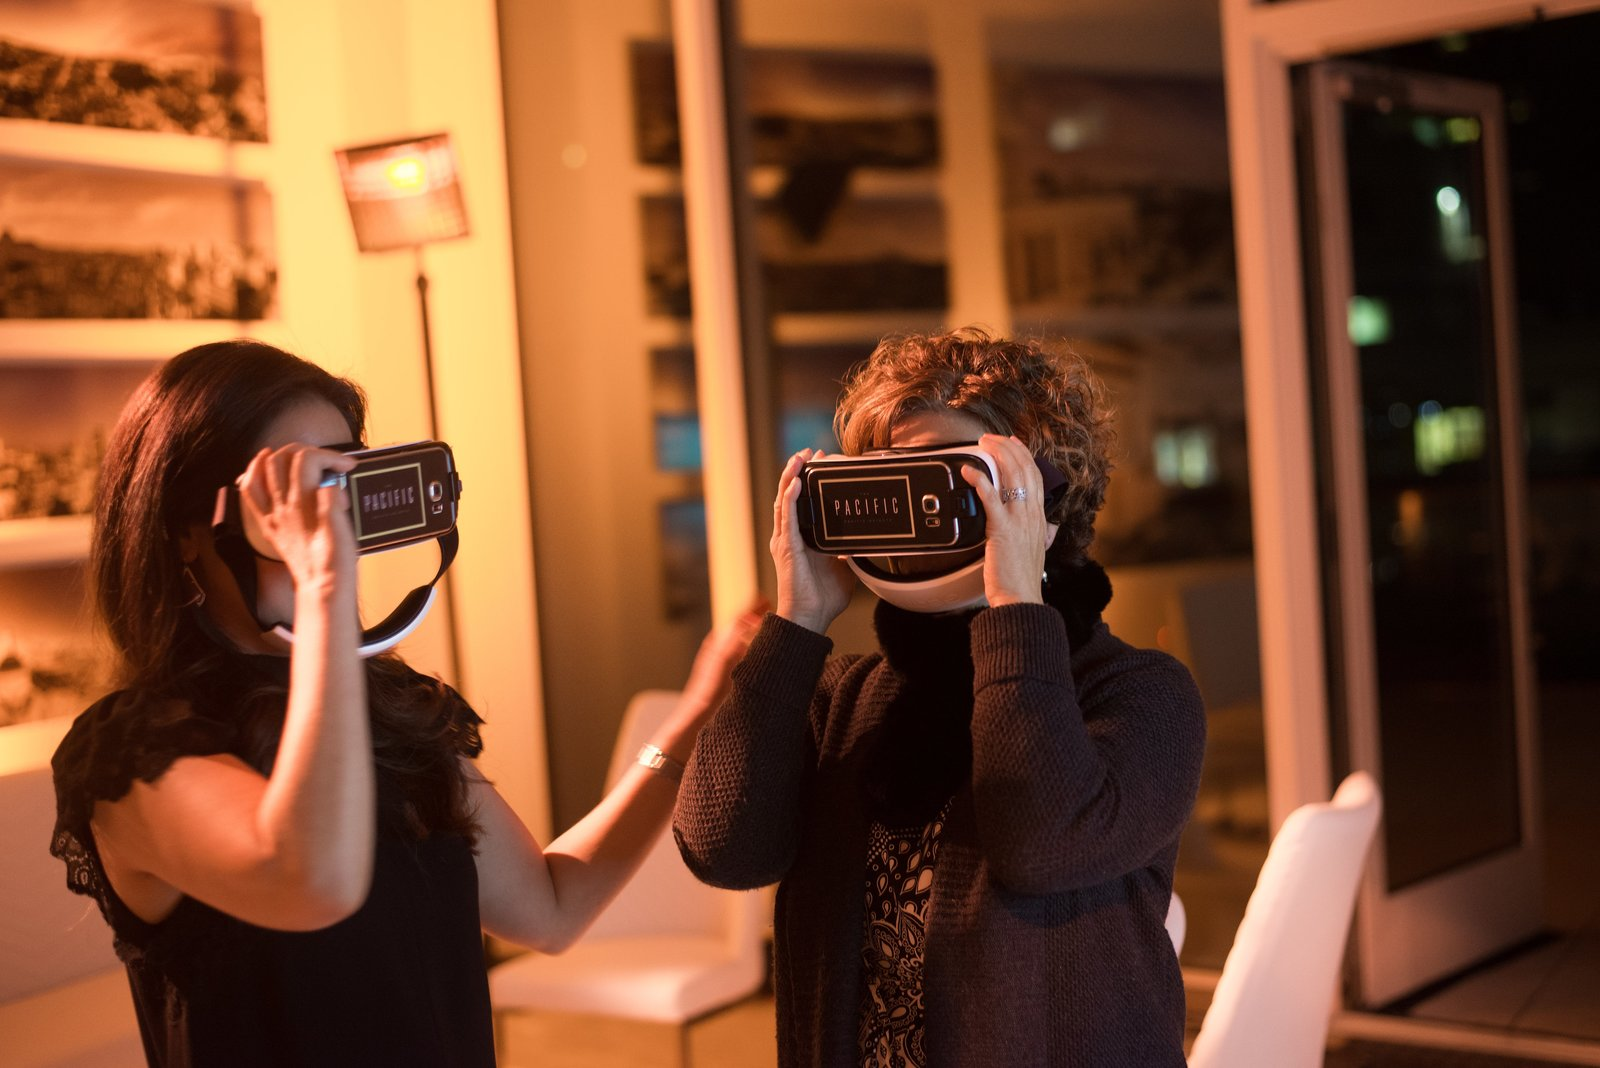 VR Fun at The Pacific  Take a Virtual Walk through the Pacific Height's Crown Jewel: The Pacific